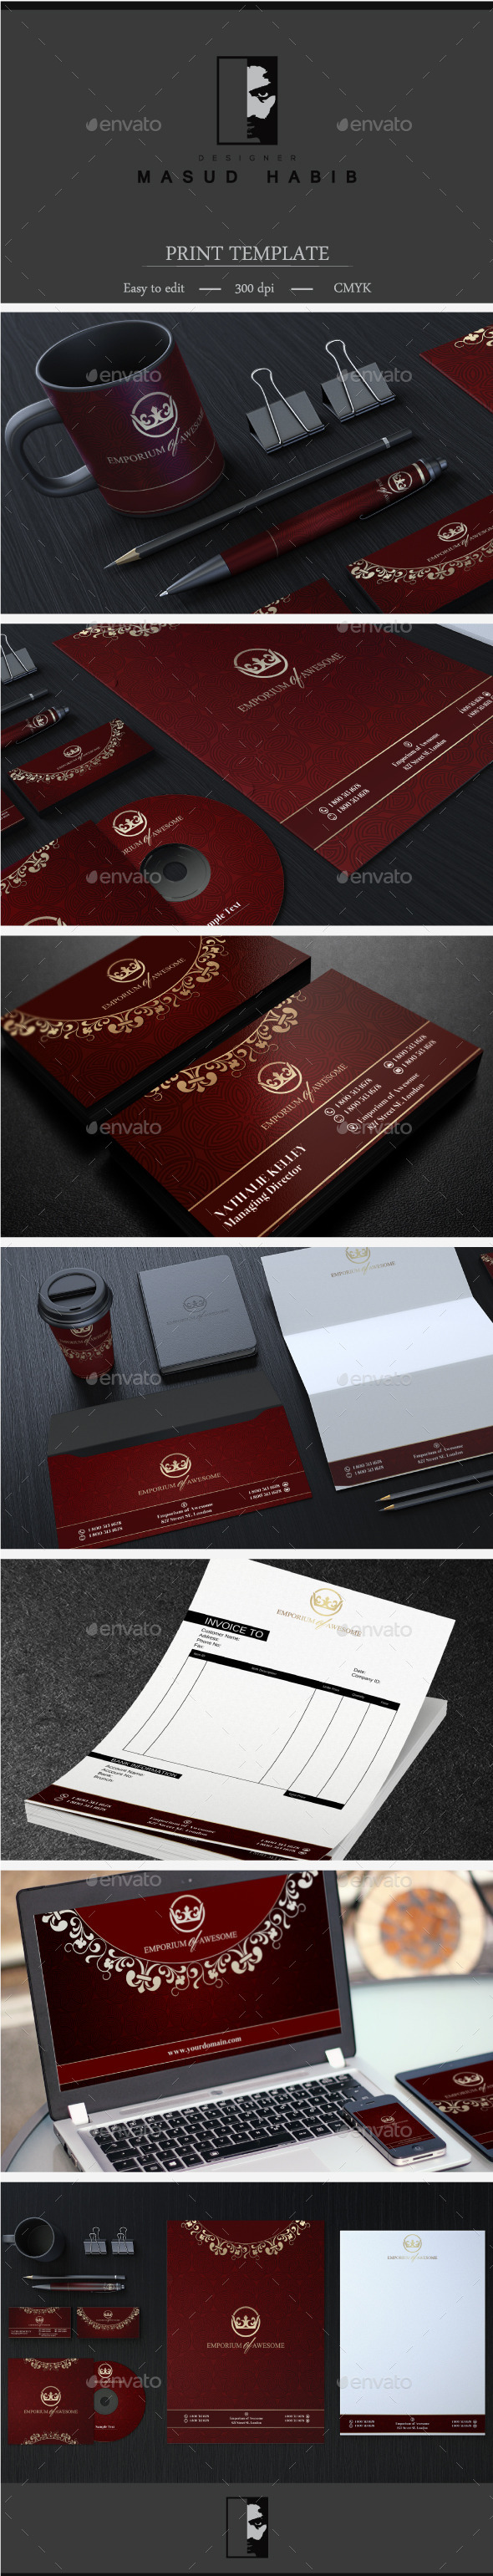 Creative Corporate Identity 27 - Stationery Print Templates